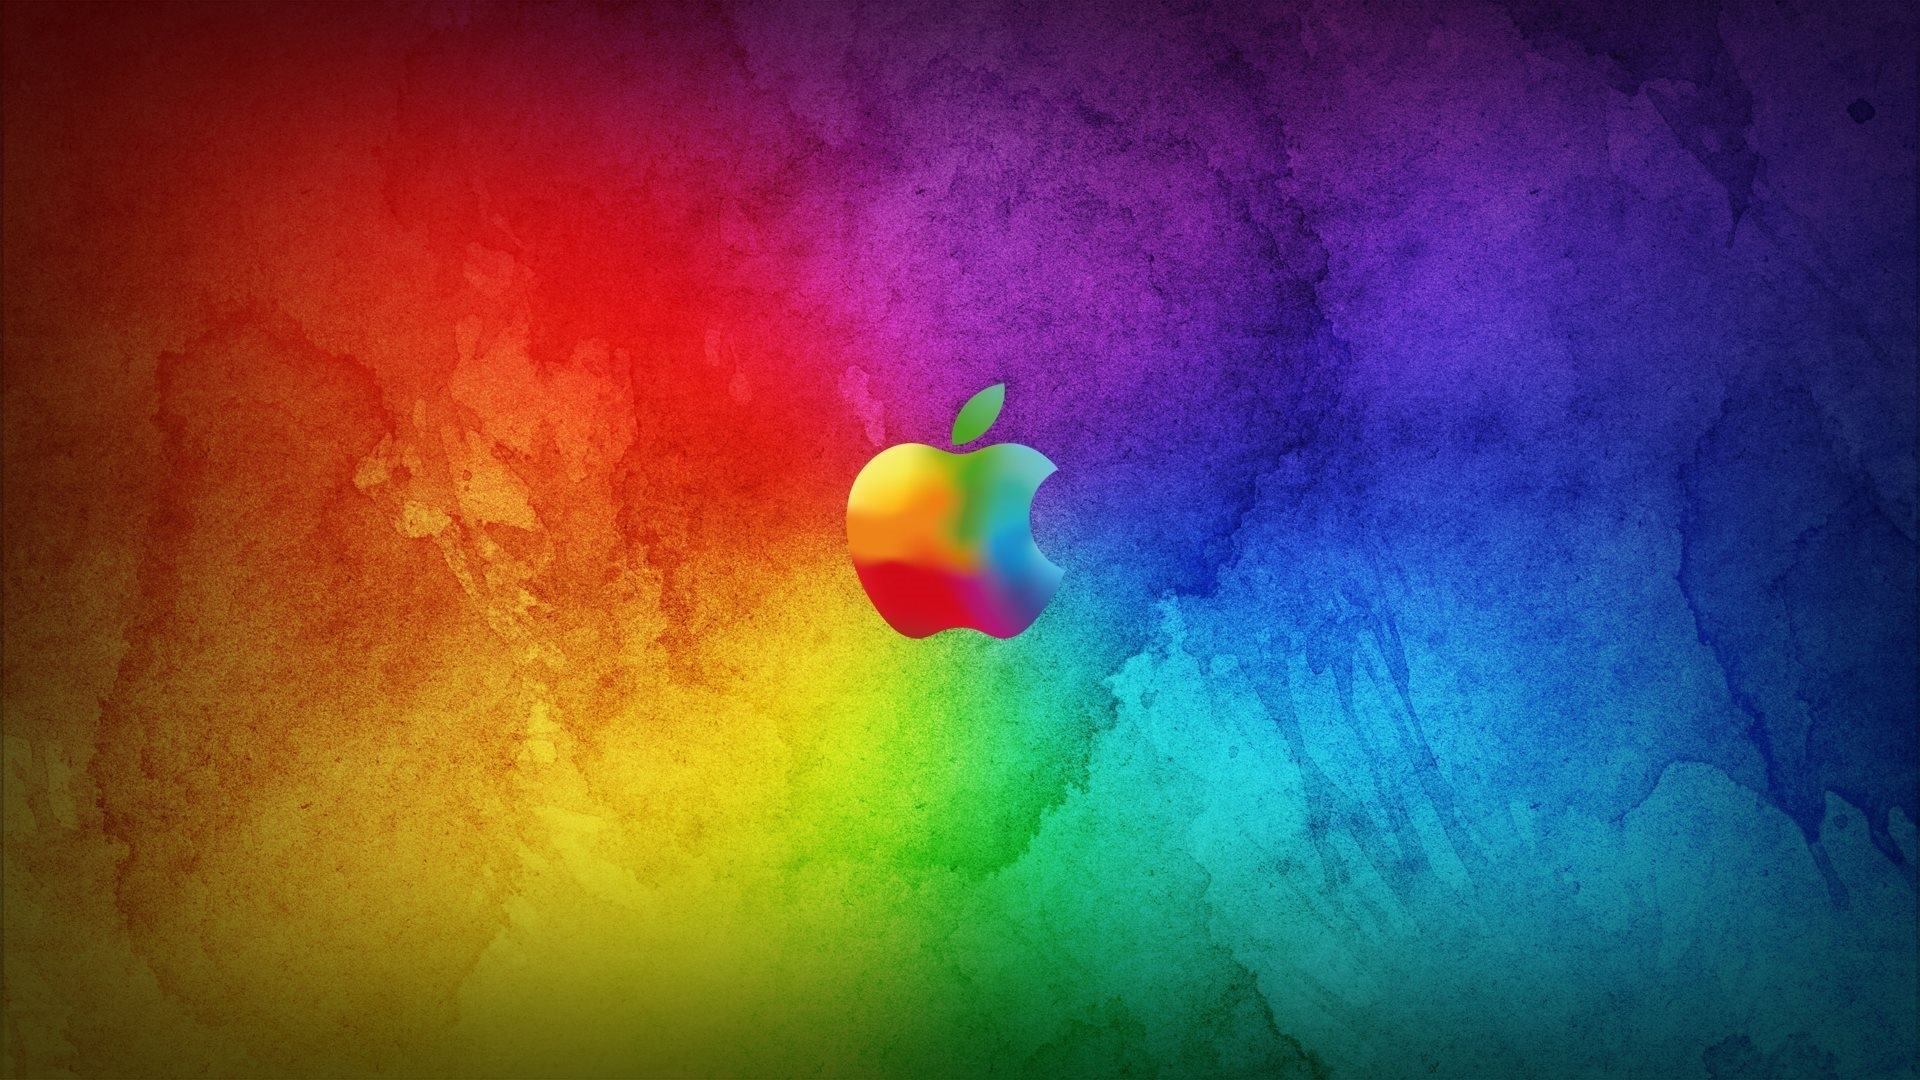 apple computer wallpaper -logo brands for free hd 3d